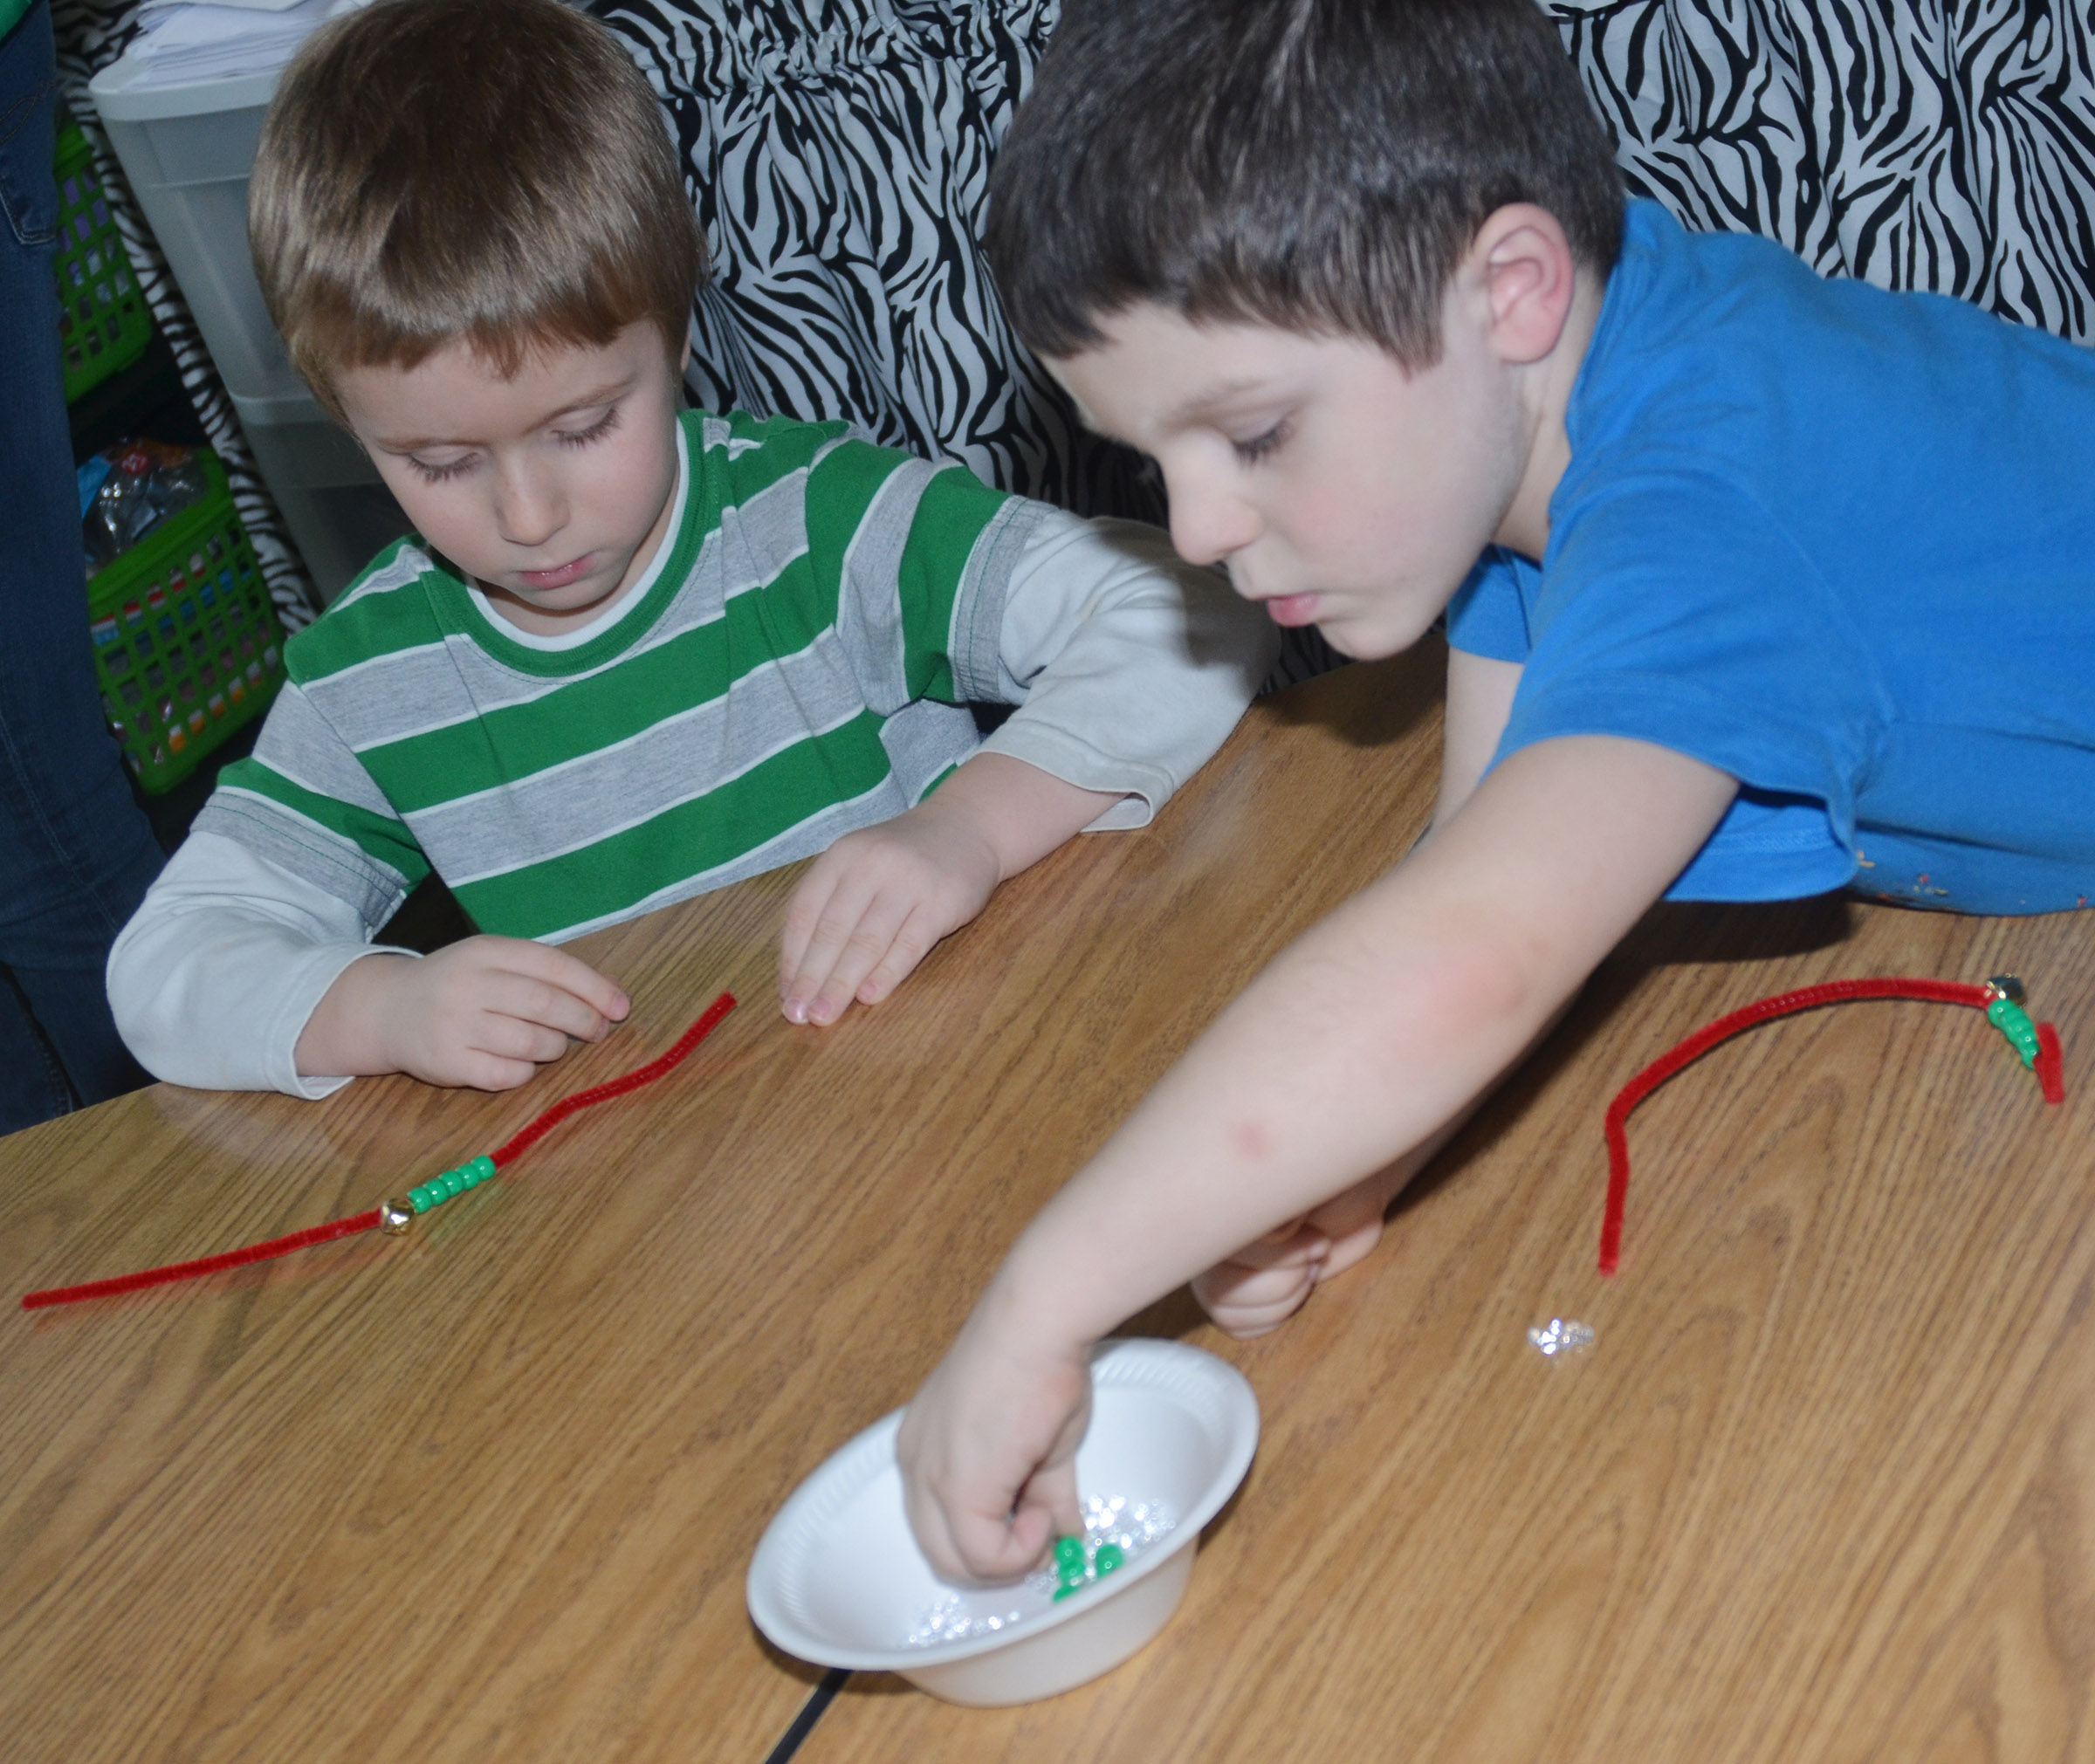 CES kindergarteners Alex Newcomb, at left, and Michael Priddy make jingle bell bracelets.